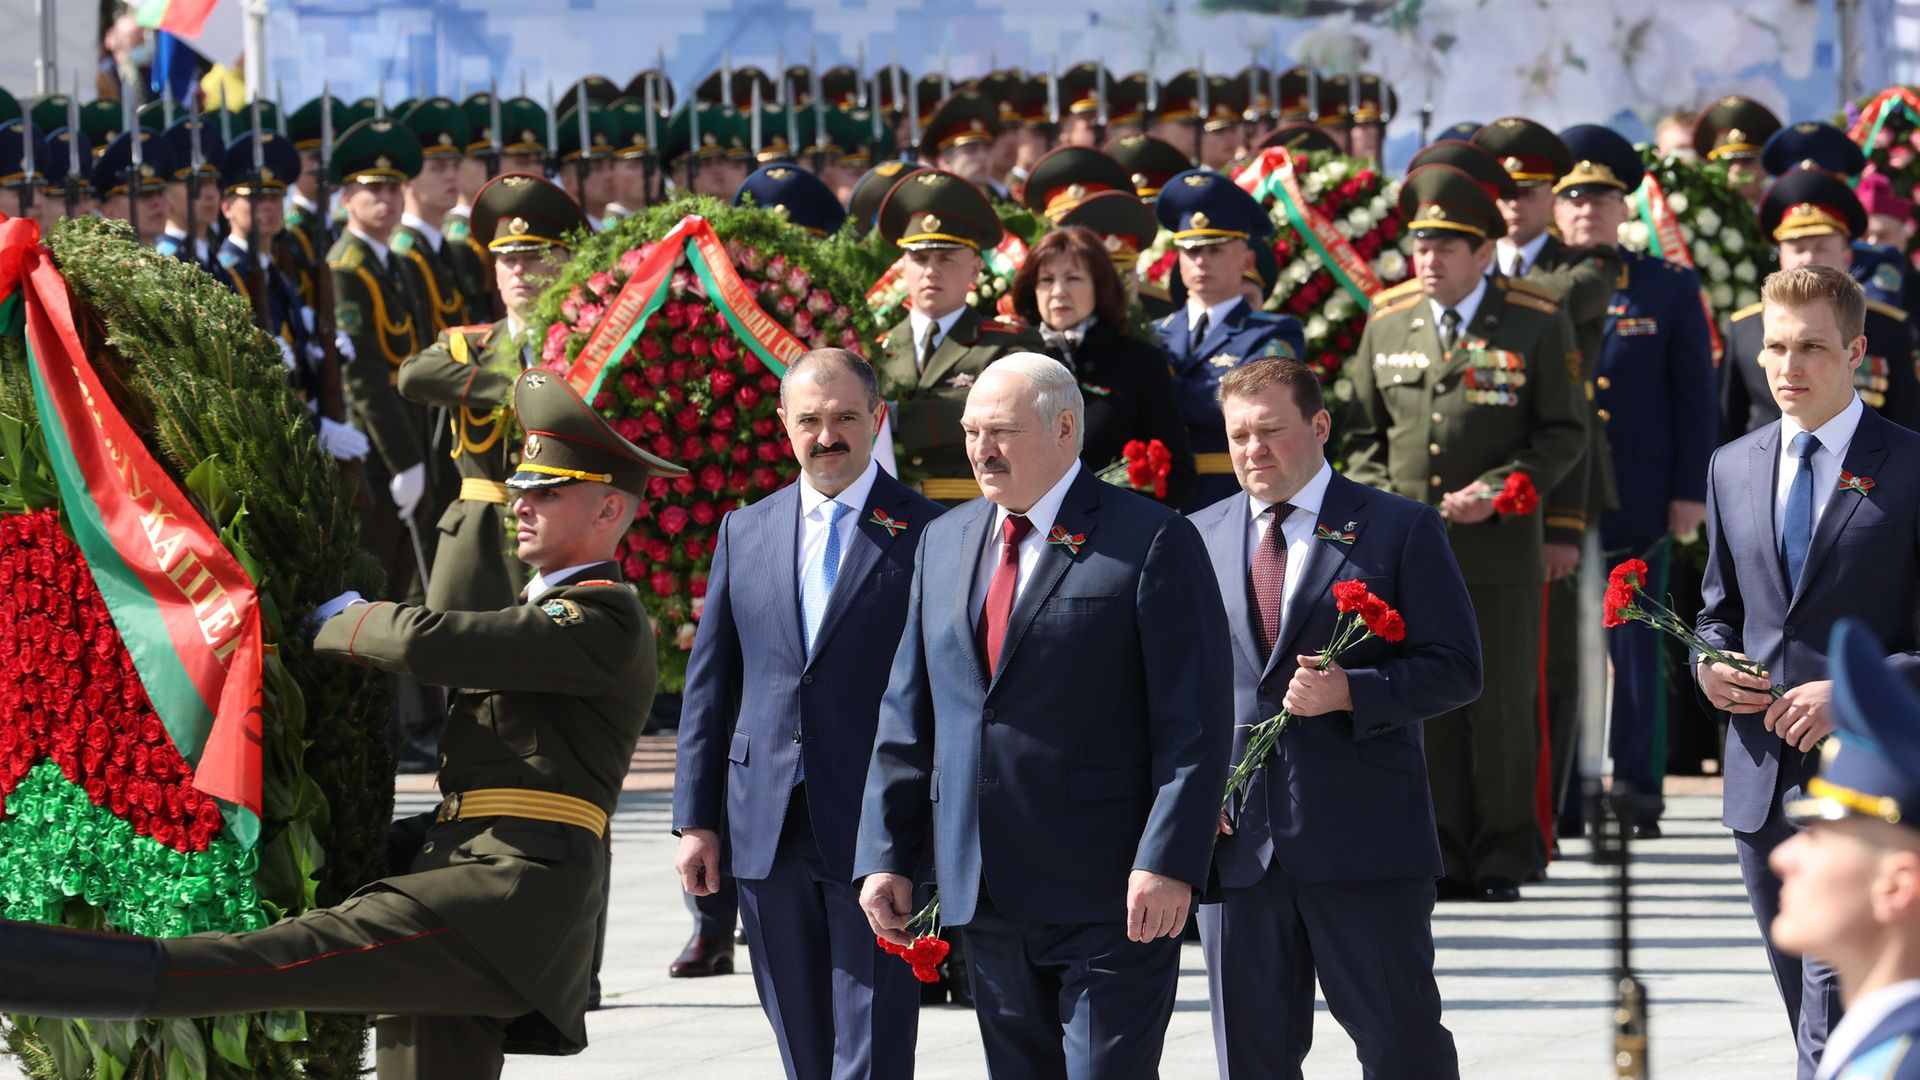 Belarus' president Alexander Lukashenko (C front), with his sons, presidential security aide Viktor Lukashenko, Belarusian National Olympic Committee member Dmitry Lukashenko, and his youngest son Nikolai Lukashenko (L-R), as they lay wreaths on Victory Day, 2021 - Credit: Maxim Guchek/BelTA/TASS